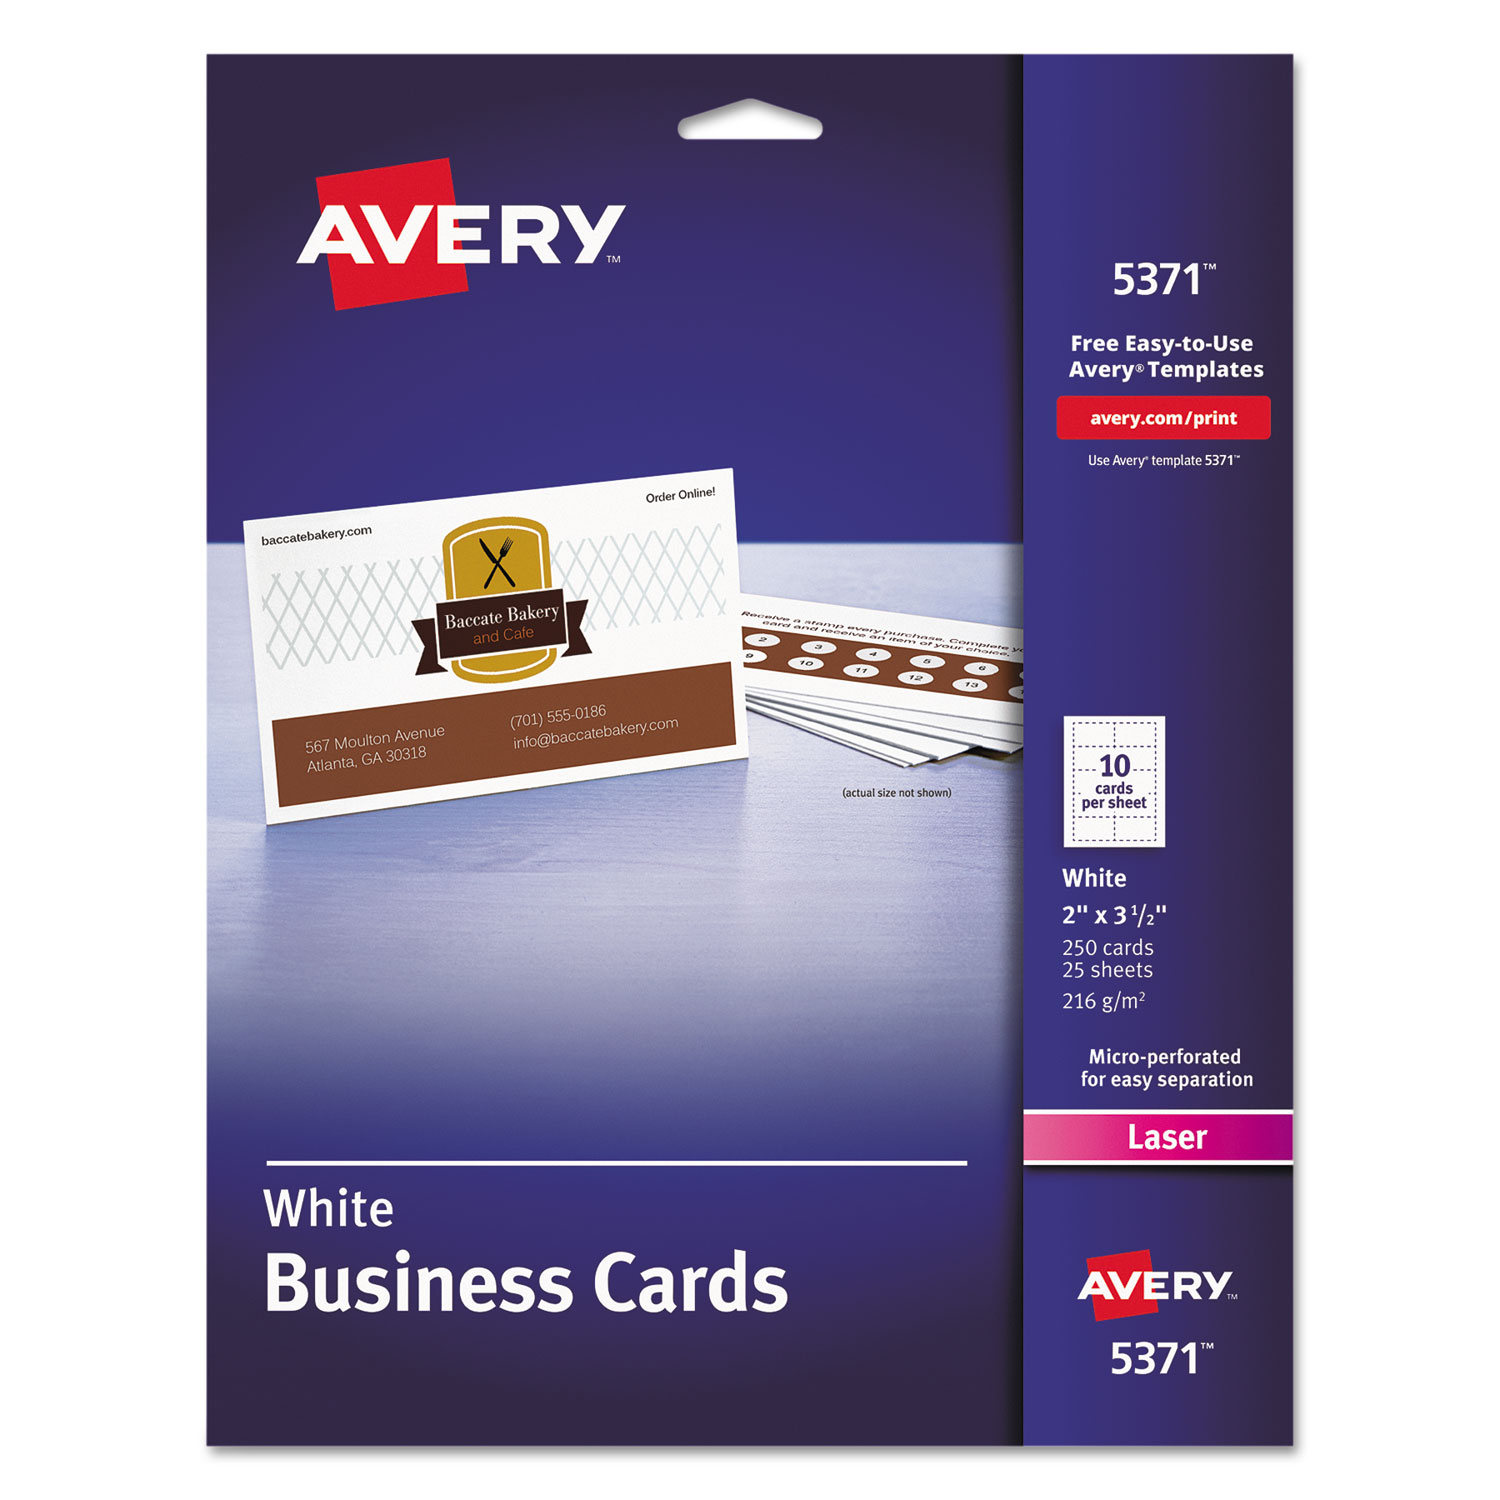 Printable microperf business cards by avery ave5371 ave5371 thumbnail 1 reheart Choice Image